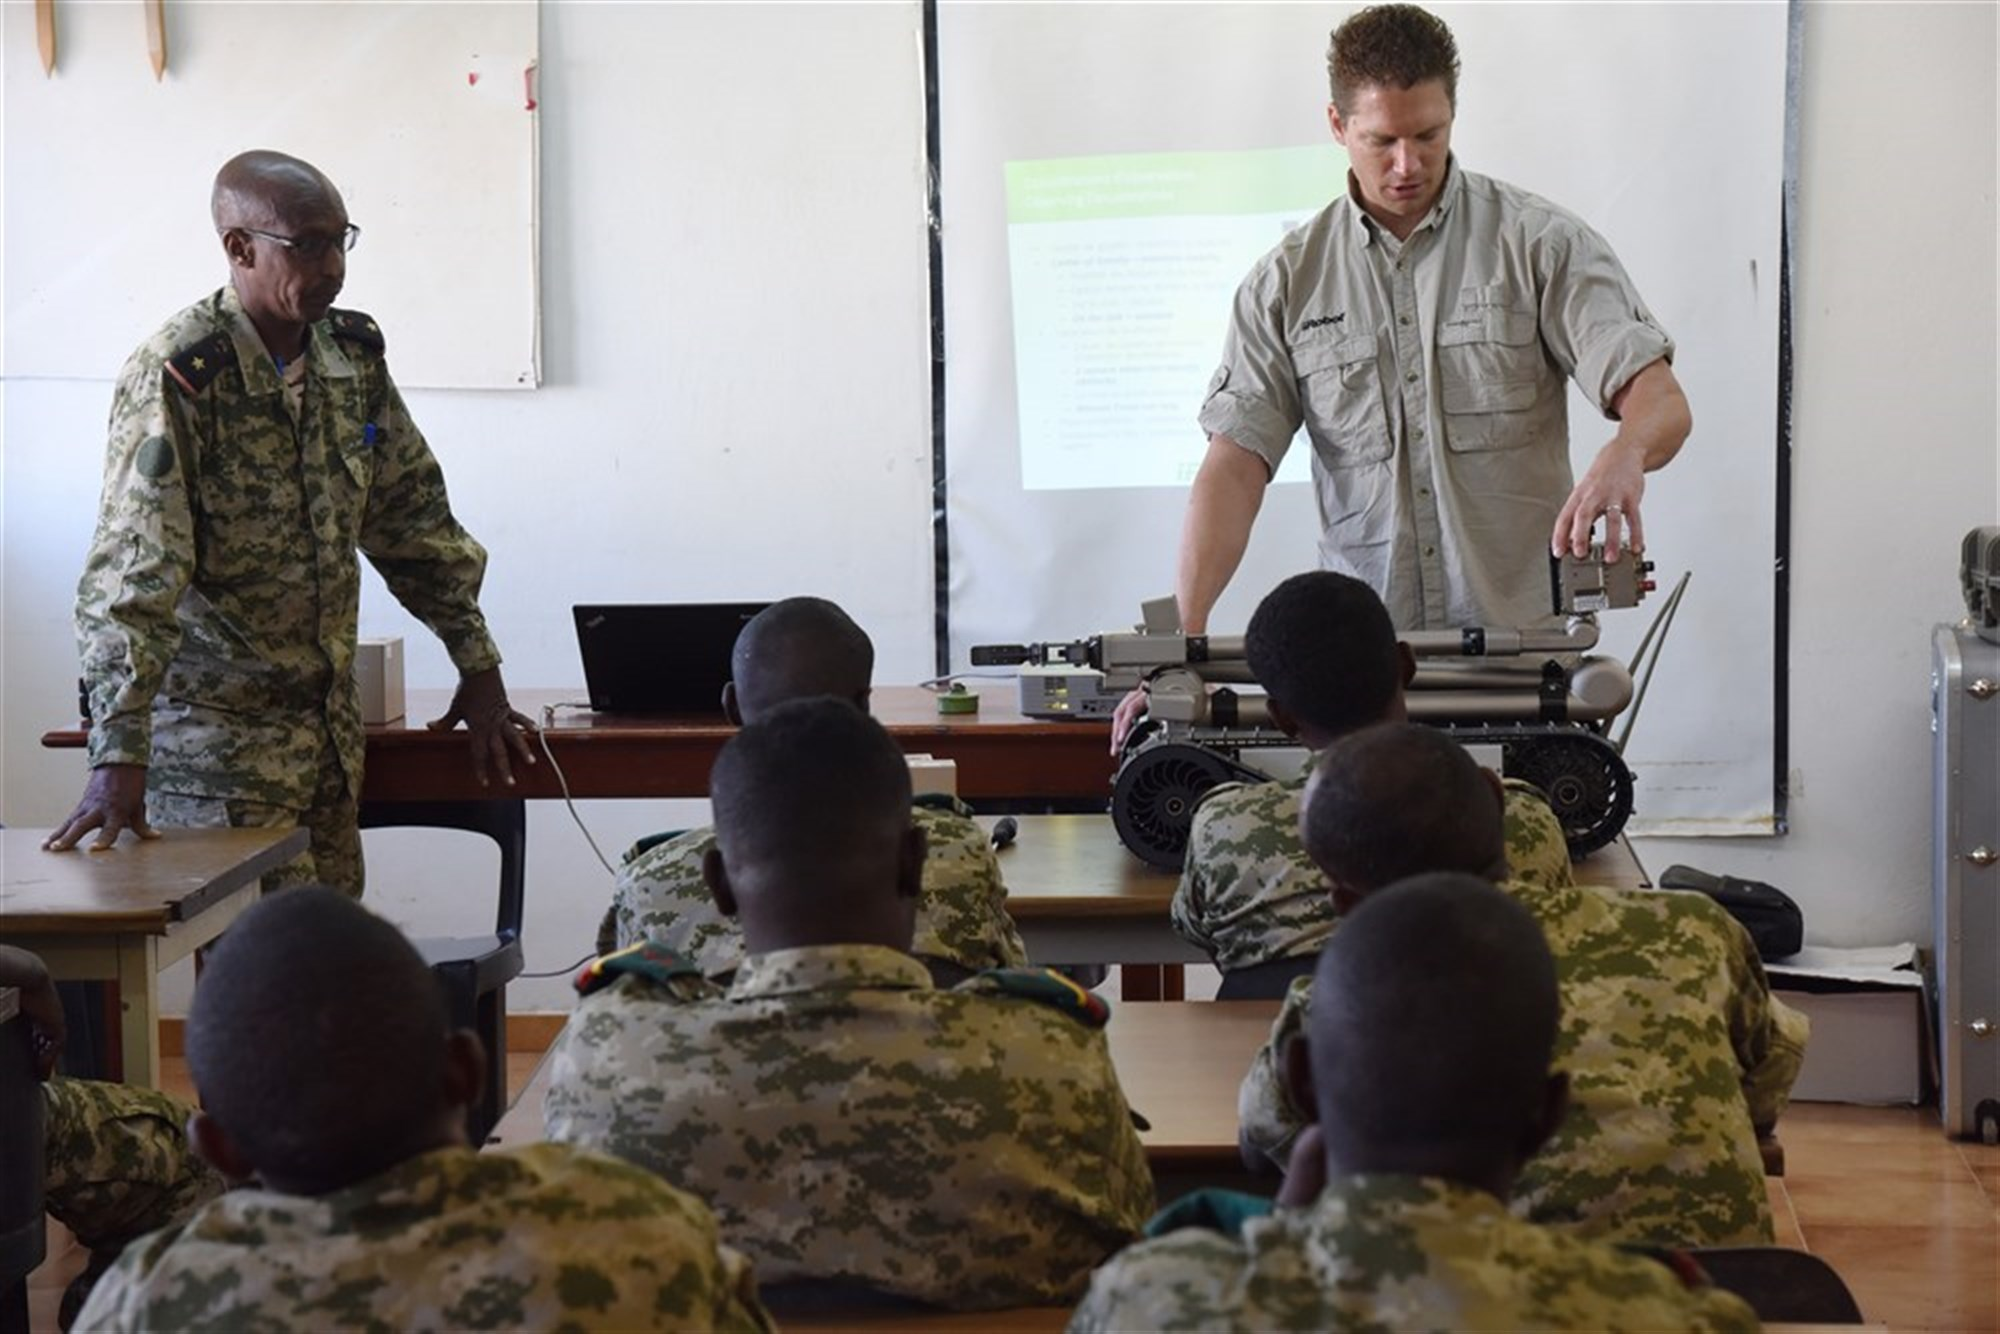 Joseph Brunette, iRobot instructor, leads a class on the 510 Packbot to Djibouti Armed Forces (FAD) service members Oct. 12, 2015 in Djibouti. The robot can perform bomb disposal, surveillance and reconnaissance operations.